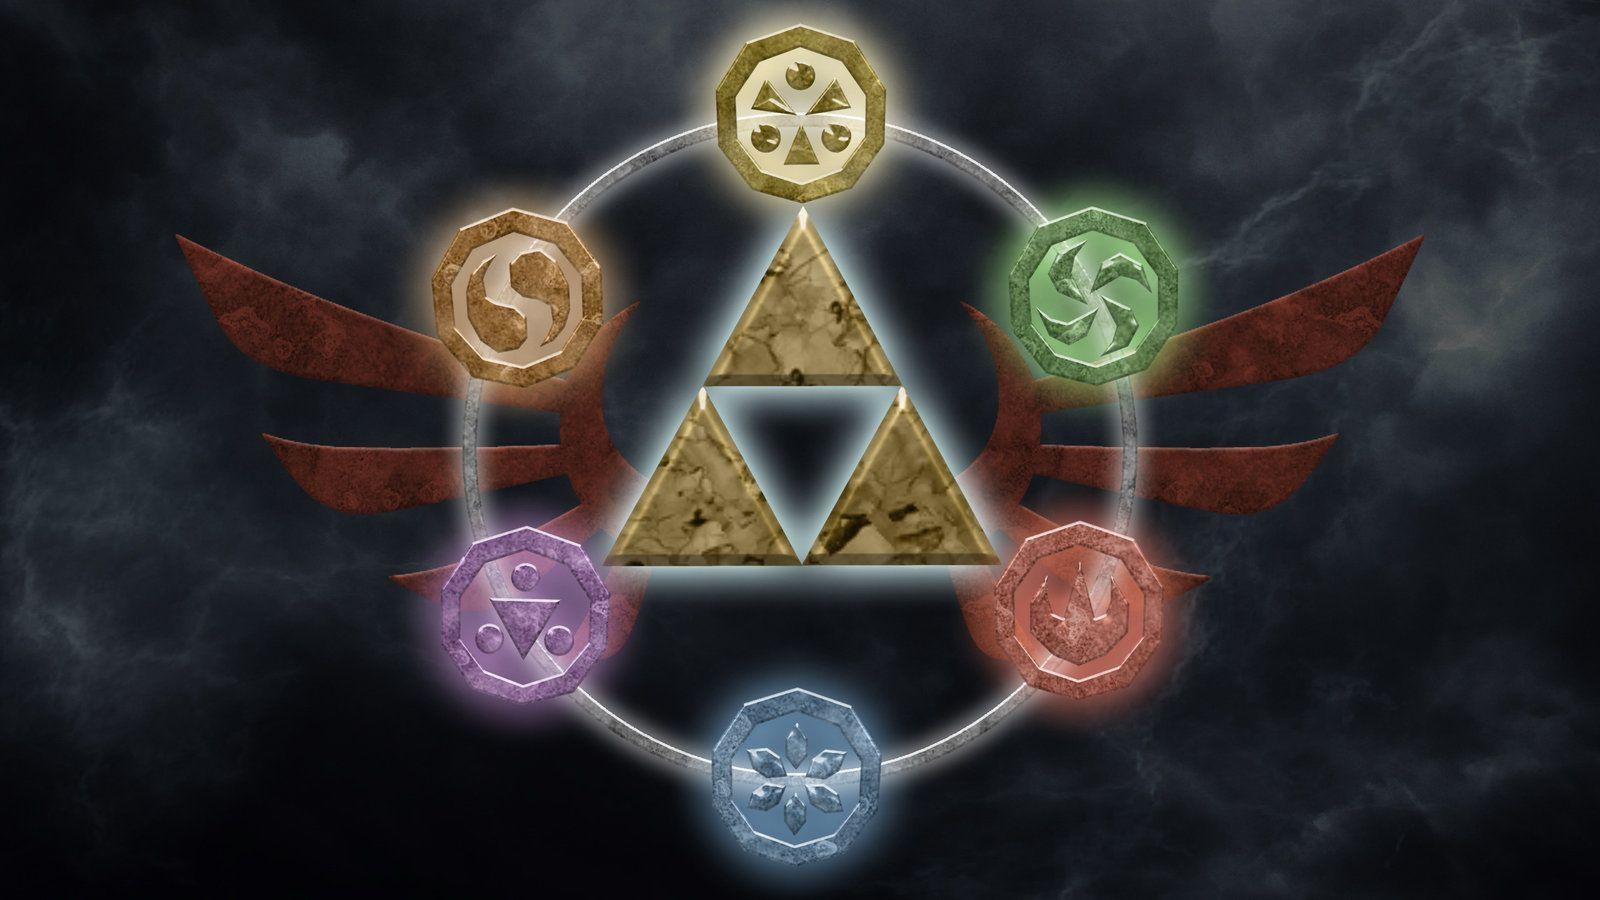 Wallpapers For > Legend Of Zelda Ocarina Of Time Triforce Wallpapers